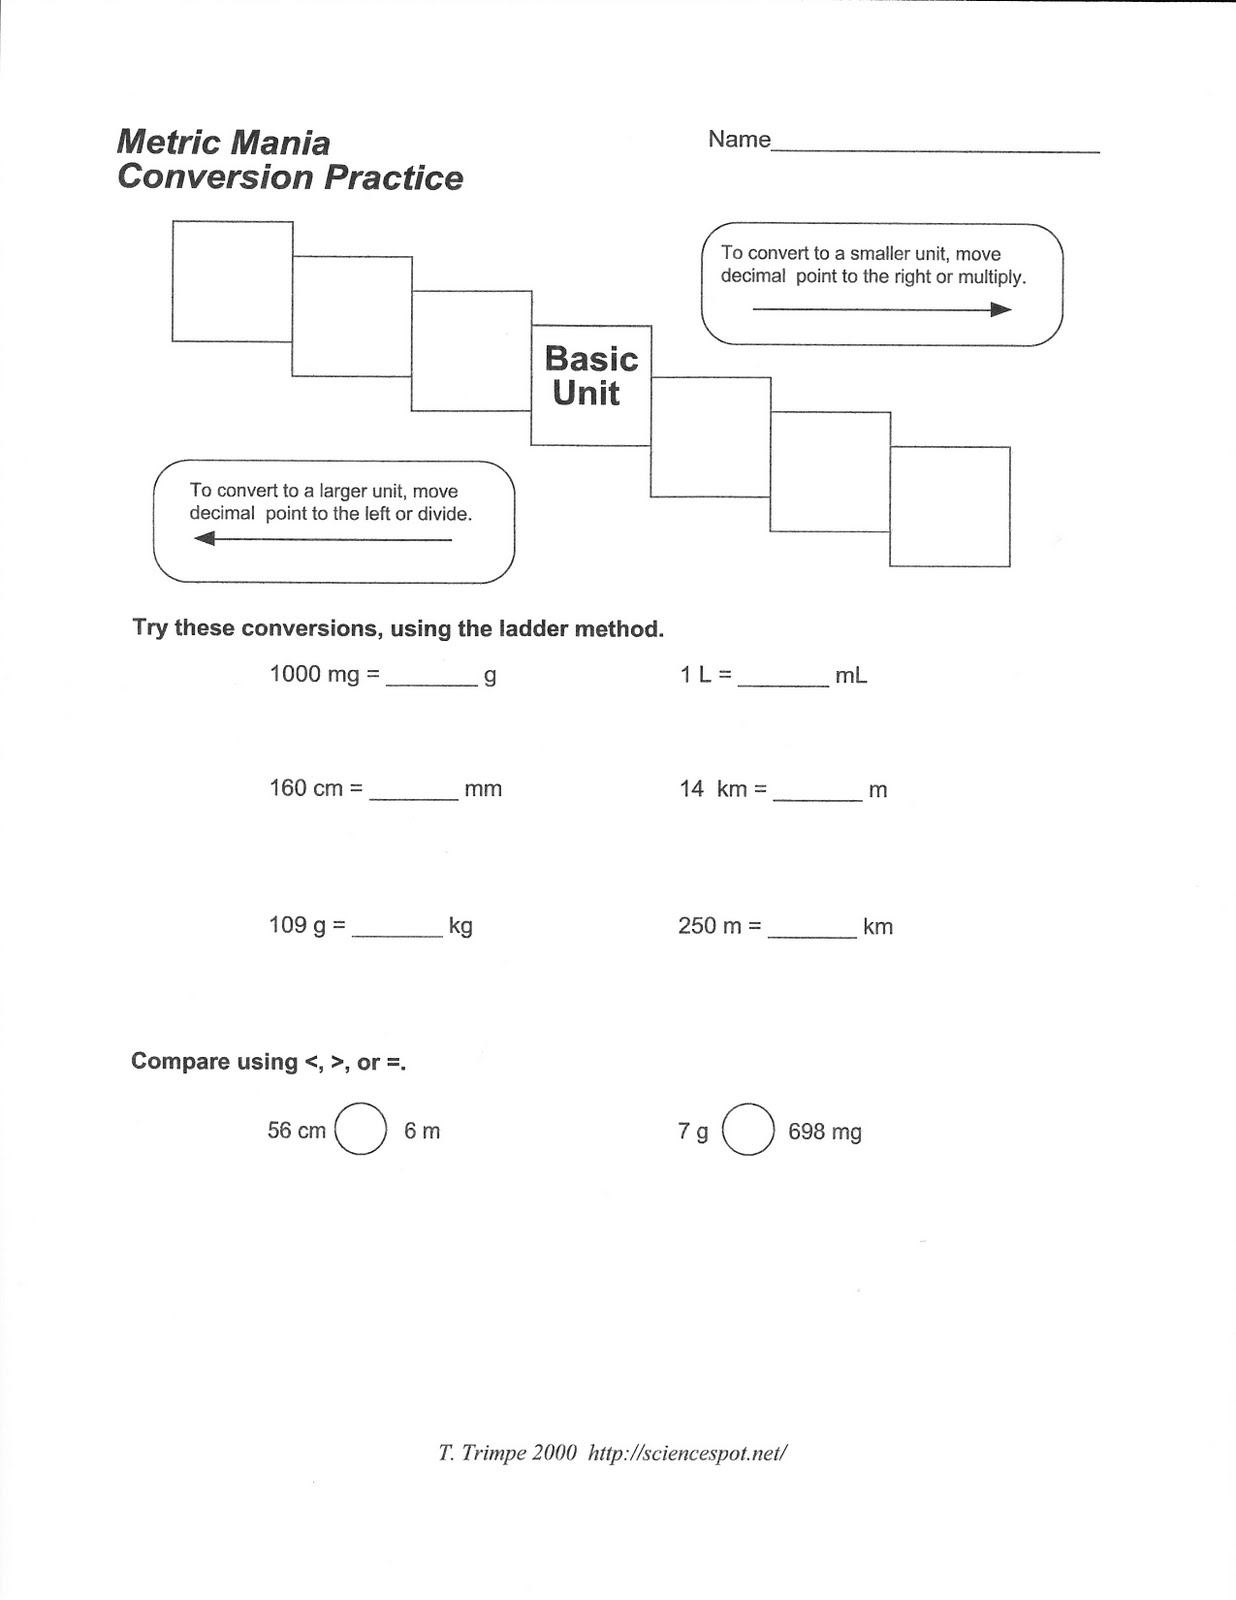 Worksheets Metric Mania Worksheet science class metric mania conversion practice practice